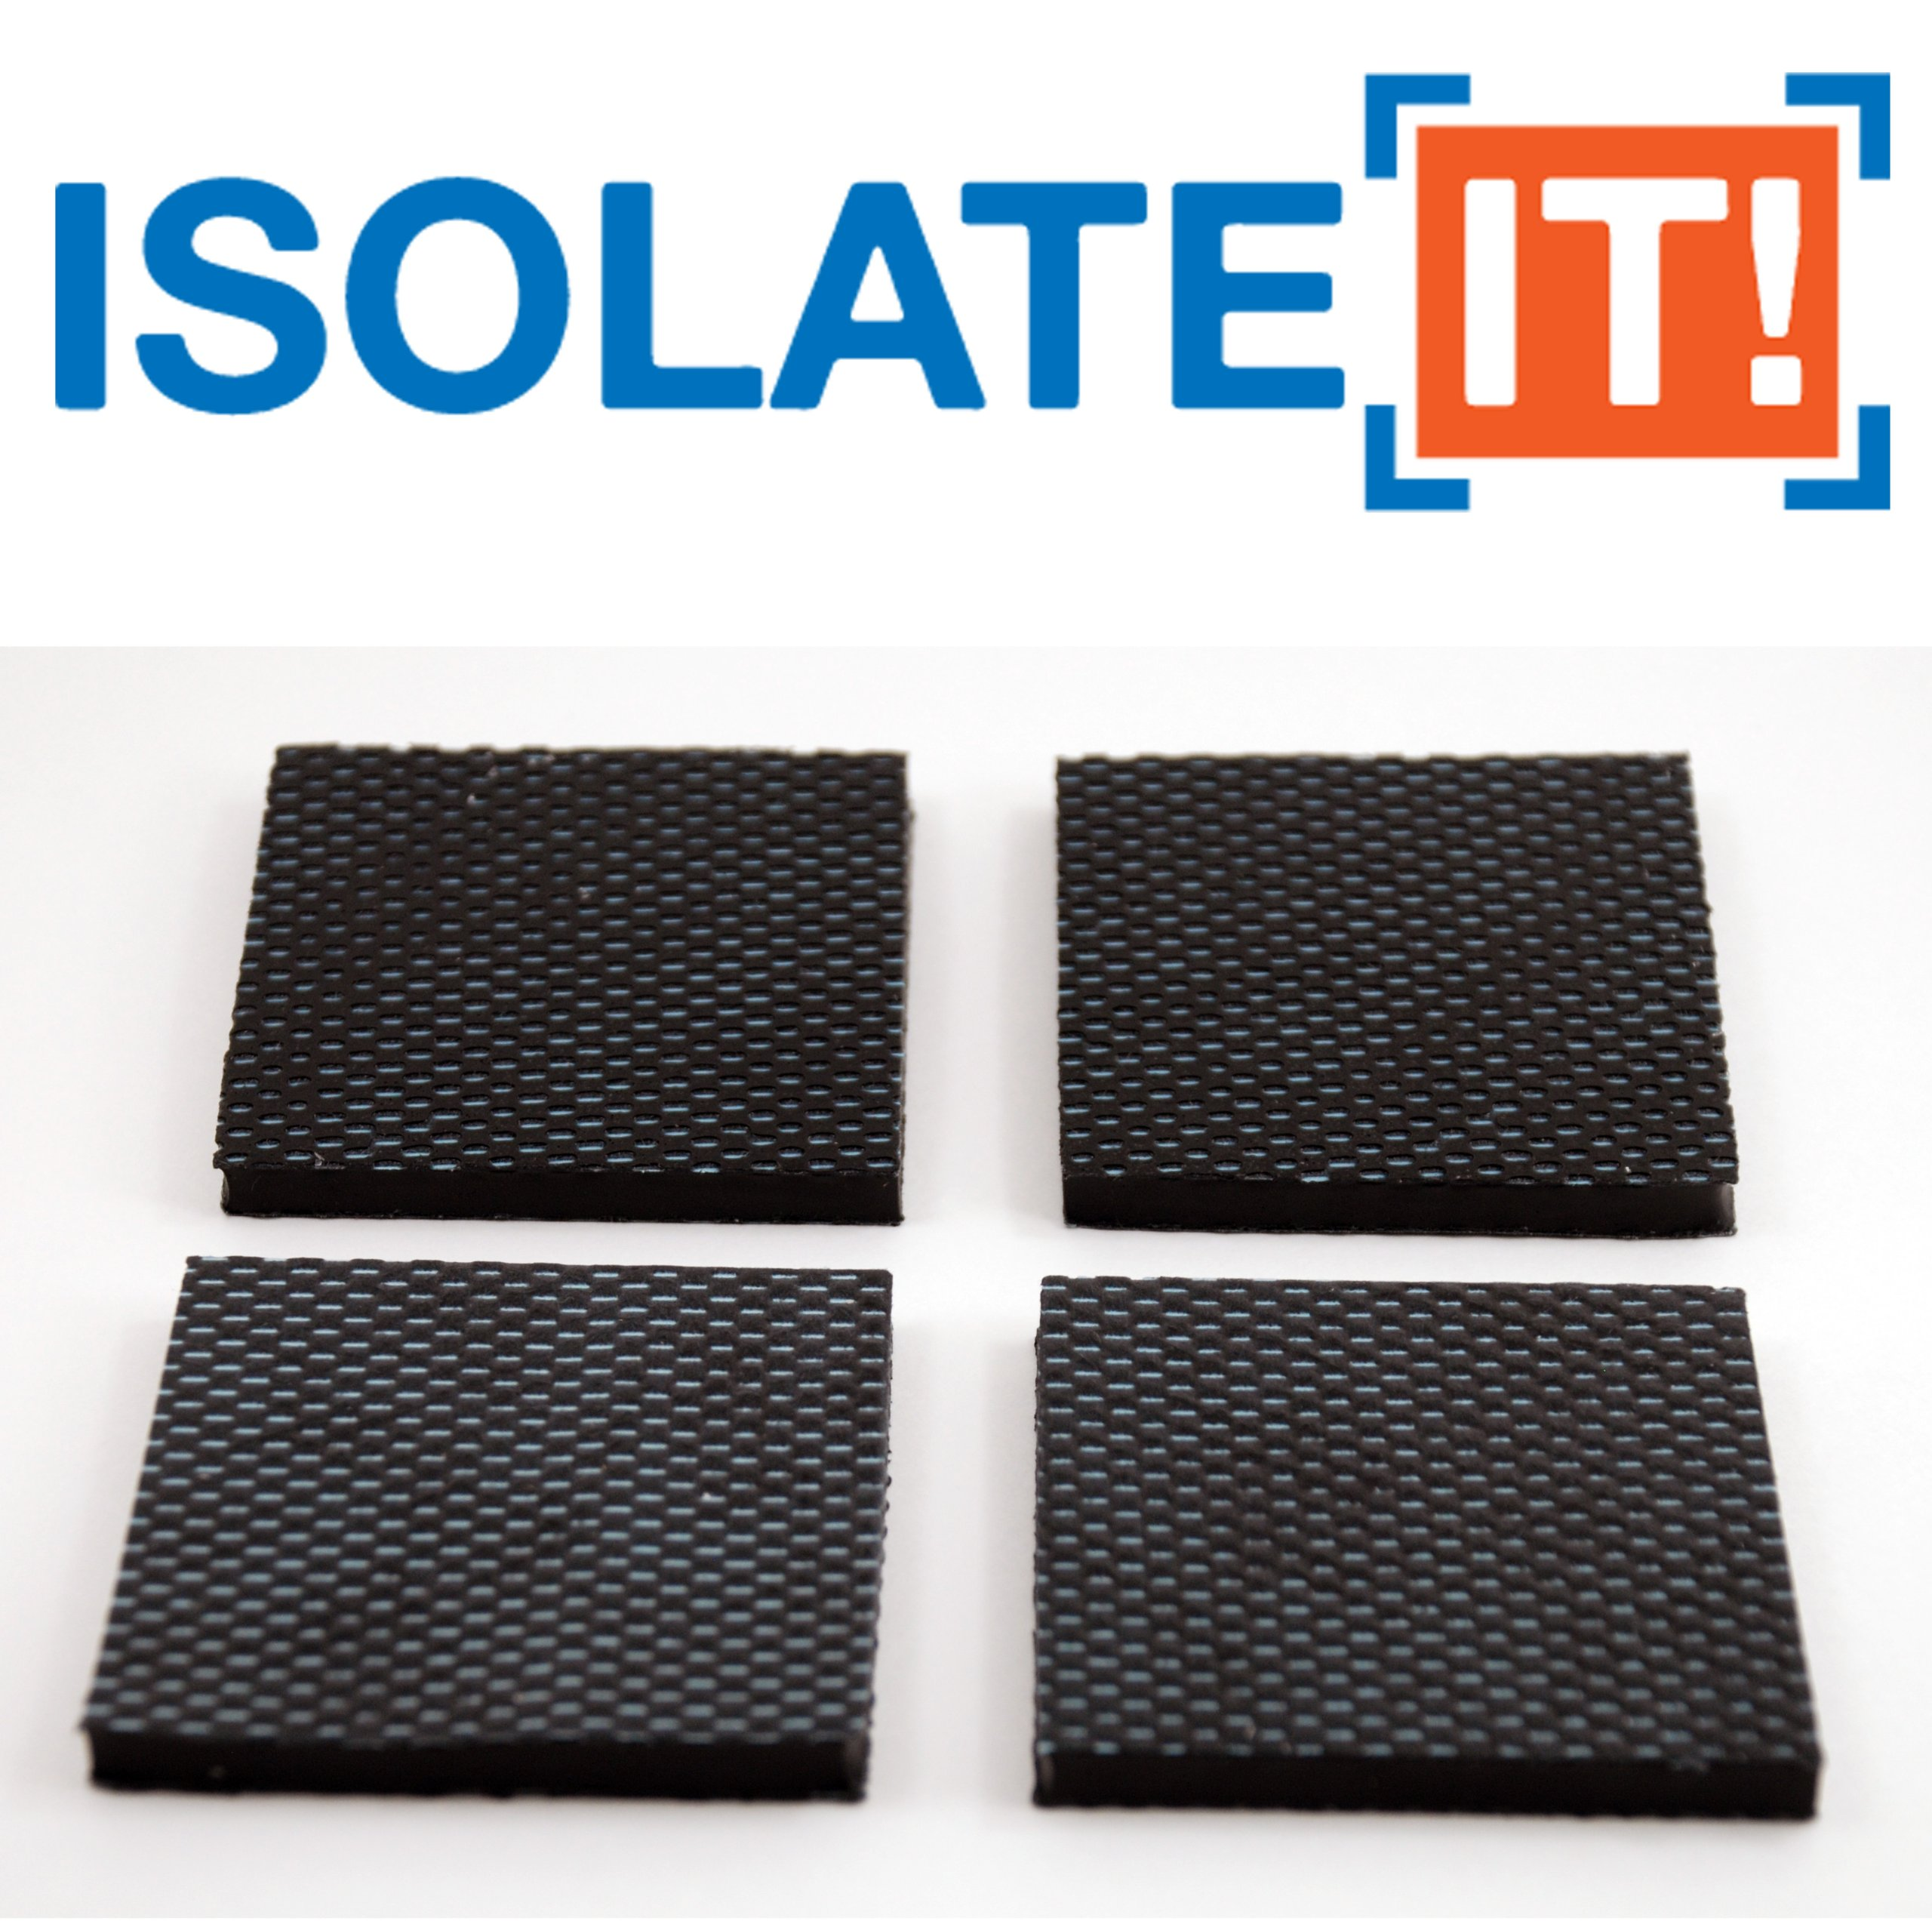 Isolate It: Sorbothane Vibration Isolation Reinforced Heavy Duty Square Pad 50 Duro (2.5'' x 2.5'' x 1/4'' Thick) - 4 Pack